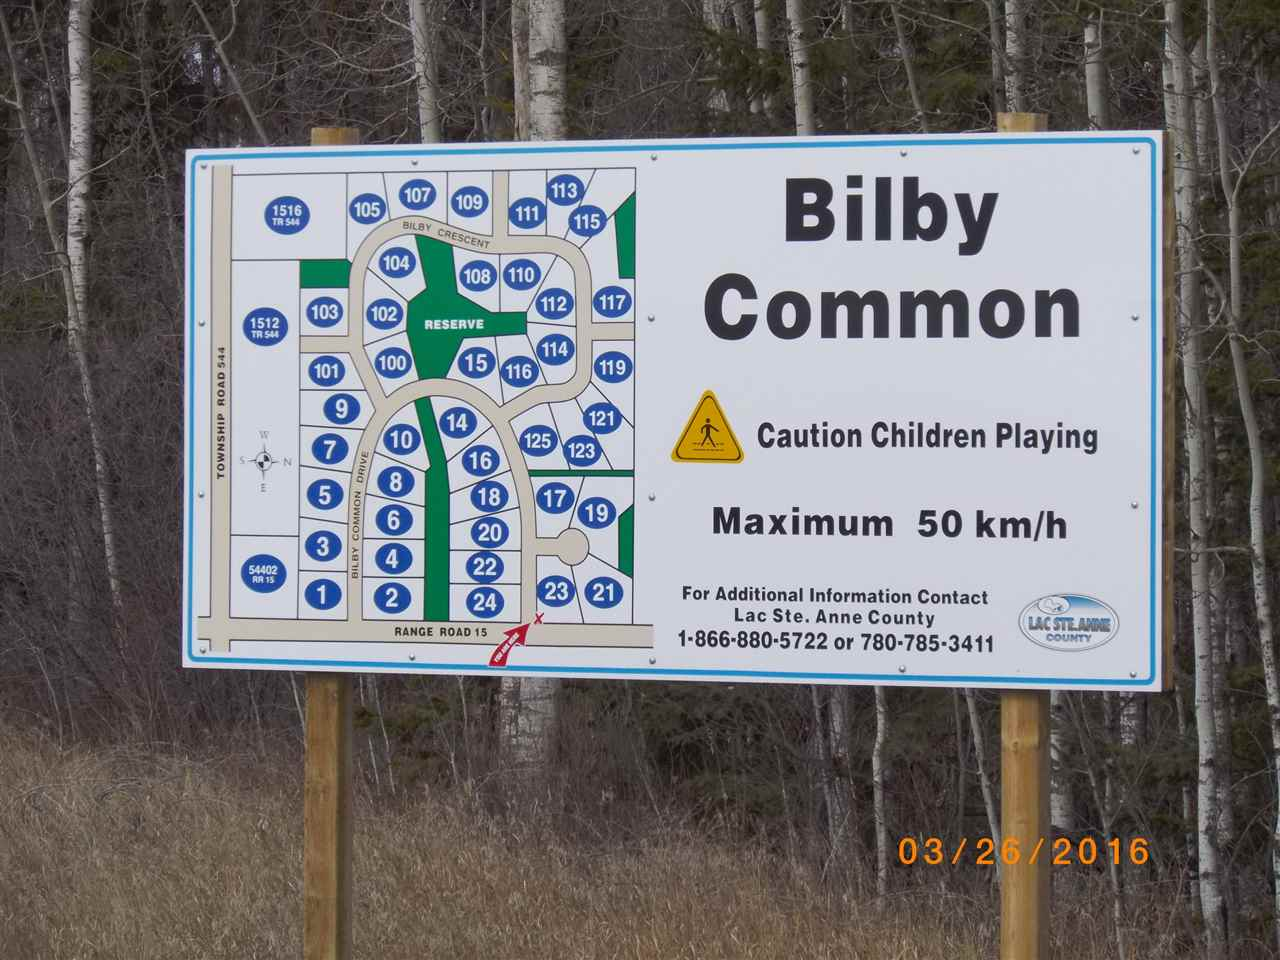 Easy 30 min from Edmonton city limits, 2 acre parcel, rolling land, power, gas & phone to property line, 15 min almost straight North of Stony Plain on 779, 20 min West of St Albert on 633. Bilby Natural Area is 1 mi N, Devils Lake is 10 min NE, Onoway 10 min NW, Onoway to Alberta Beach 15 min (on the subdivision map this lot is 116). Min house size is a comfortable 1200 sq ft. manufactured/modular ok, GST applies to purchase price. Take a look soon - Make your move now.